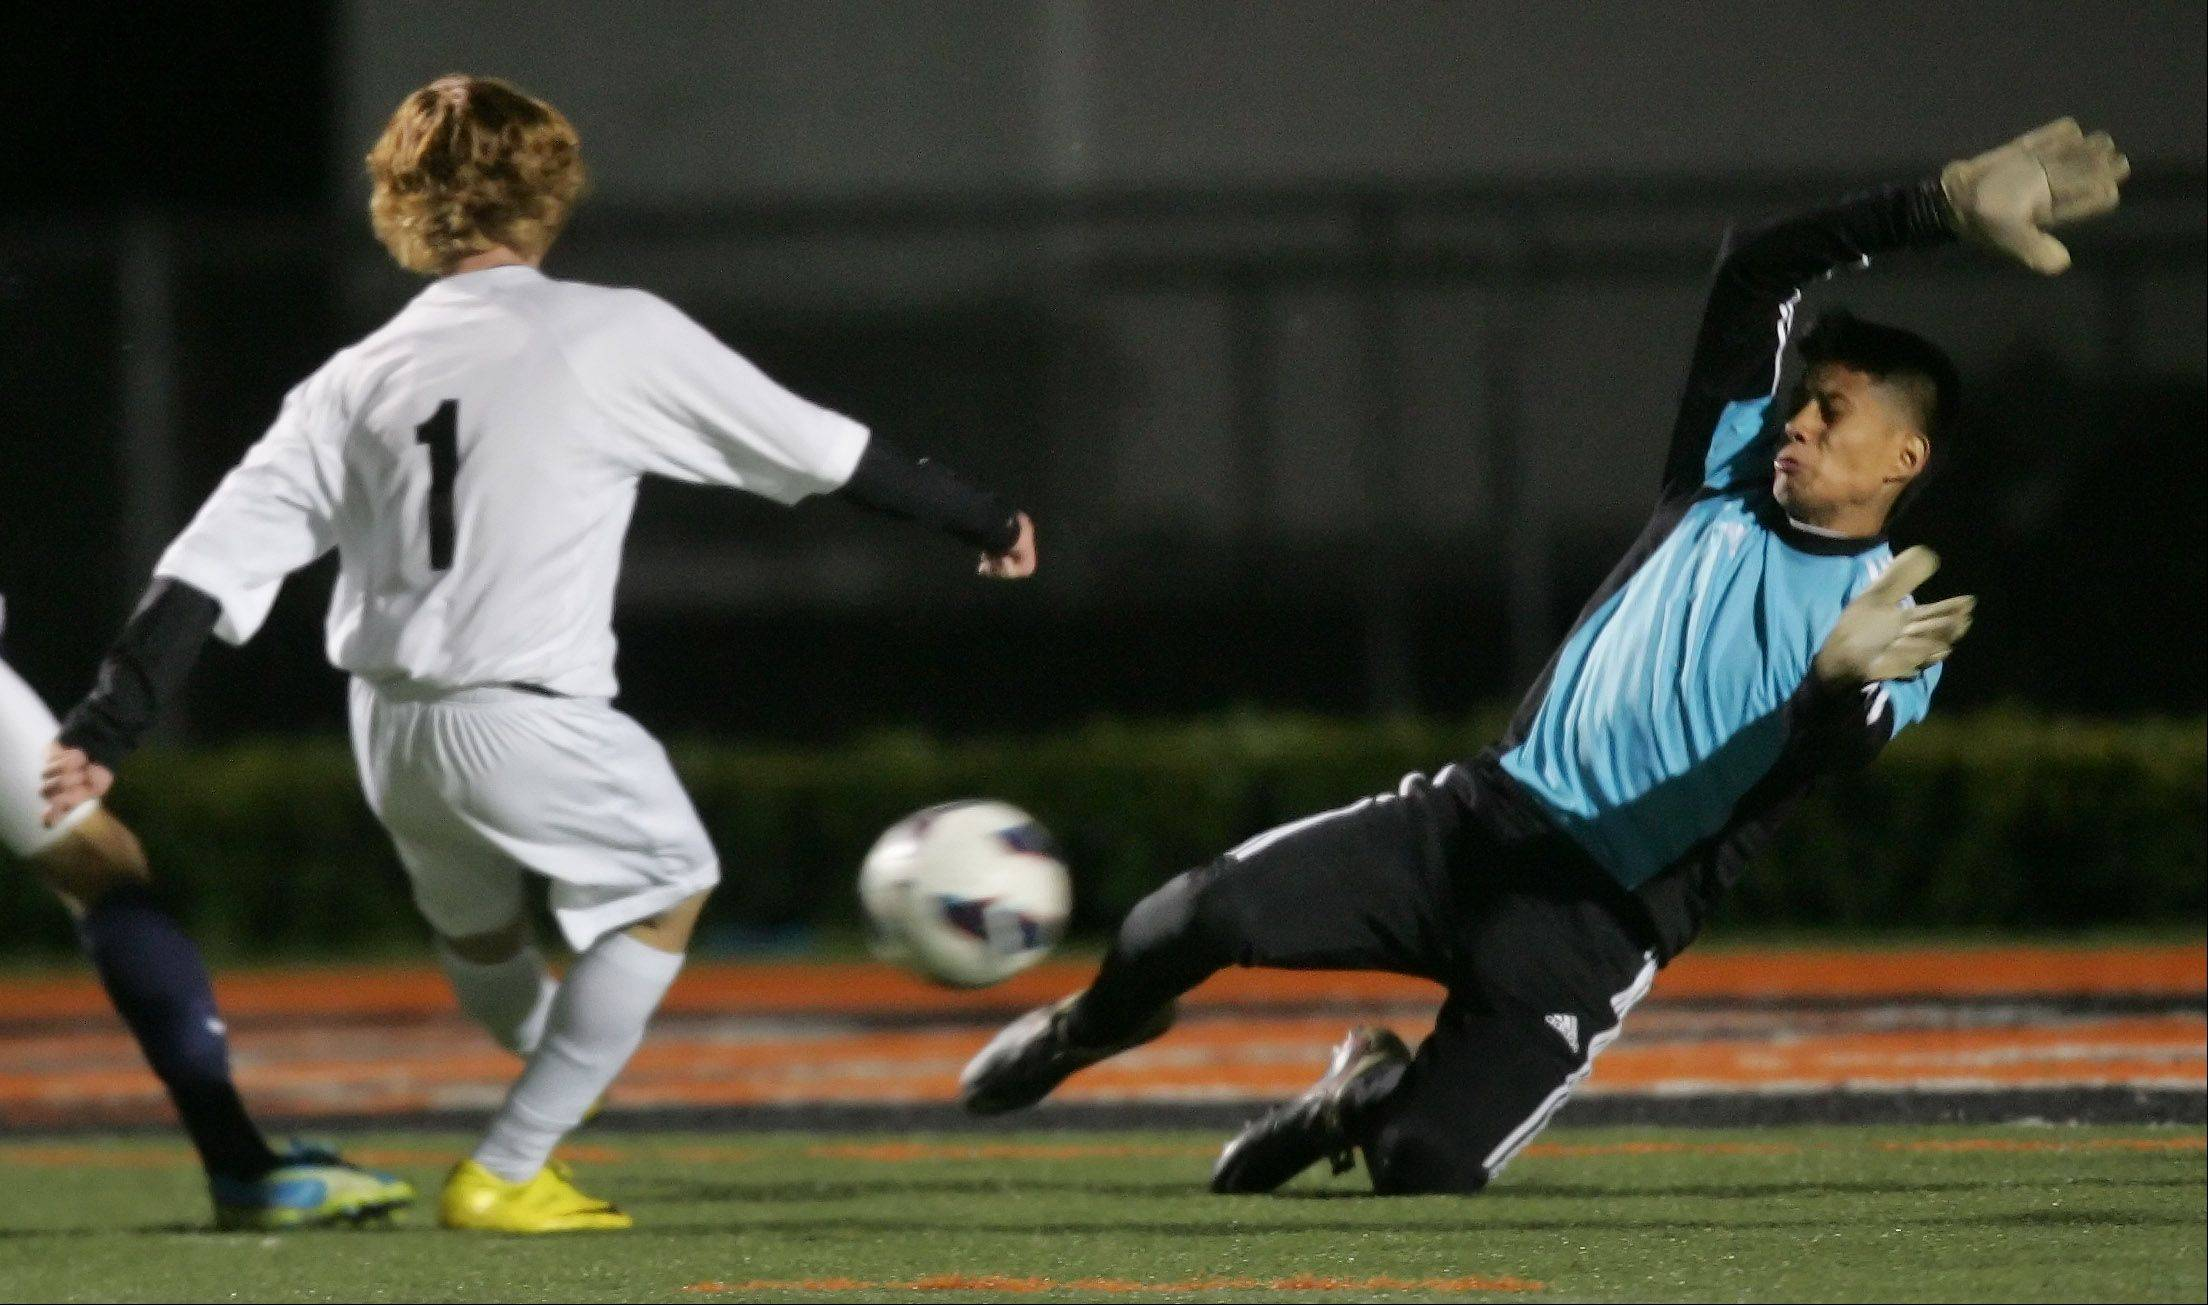 Libertyville midfielder Liam O'Connell shoots the ball past Round Lake goalie Jose Martinez to score the second goal of the game during the North Suburban Conference Championship Thursday.